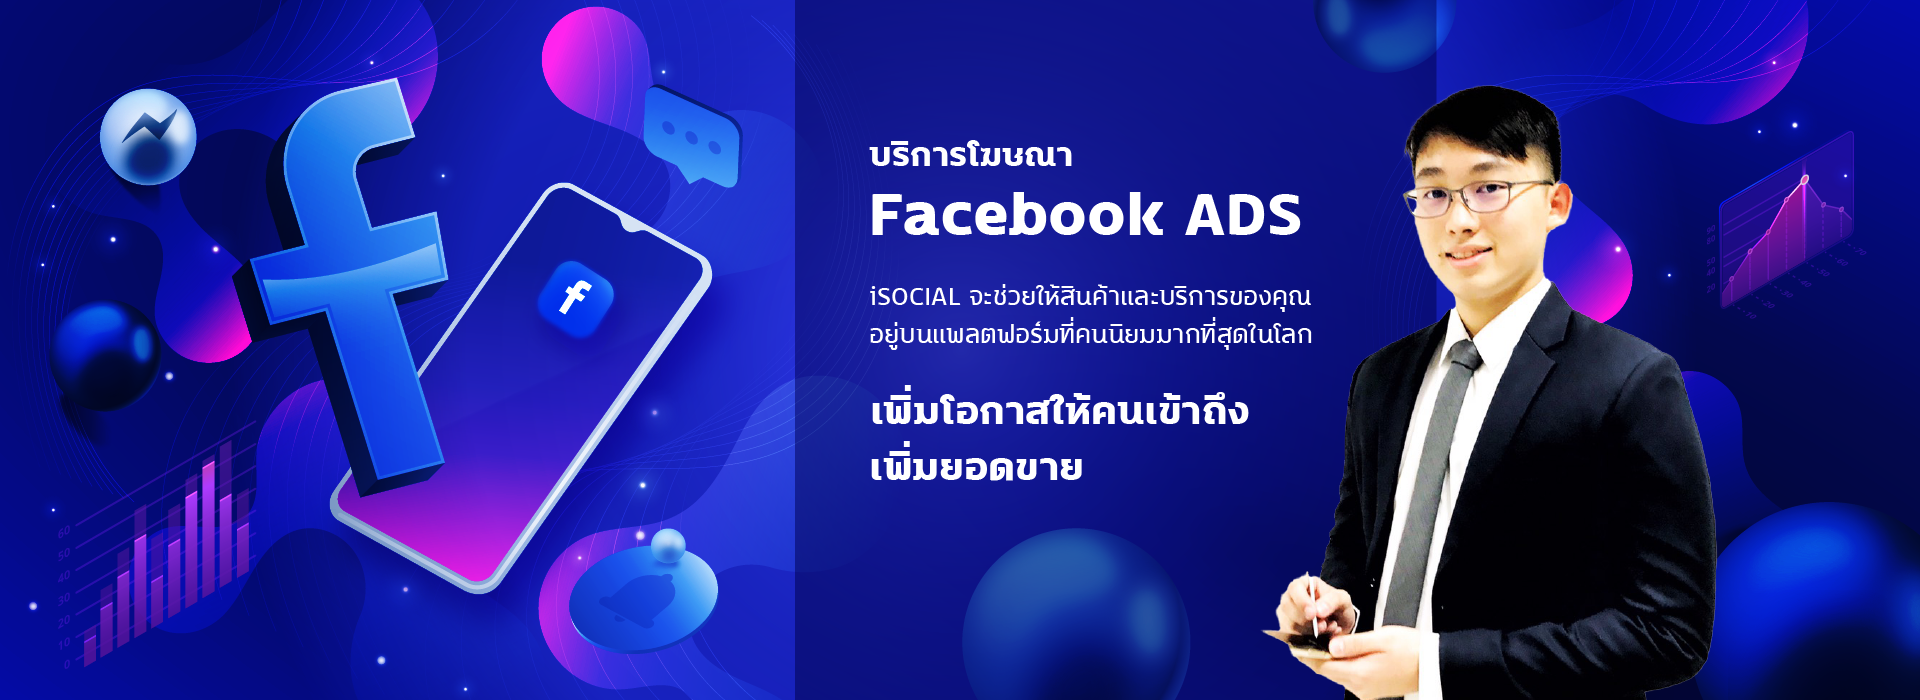 facebook ads coverpage isocial.co.th